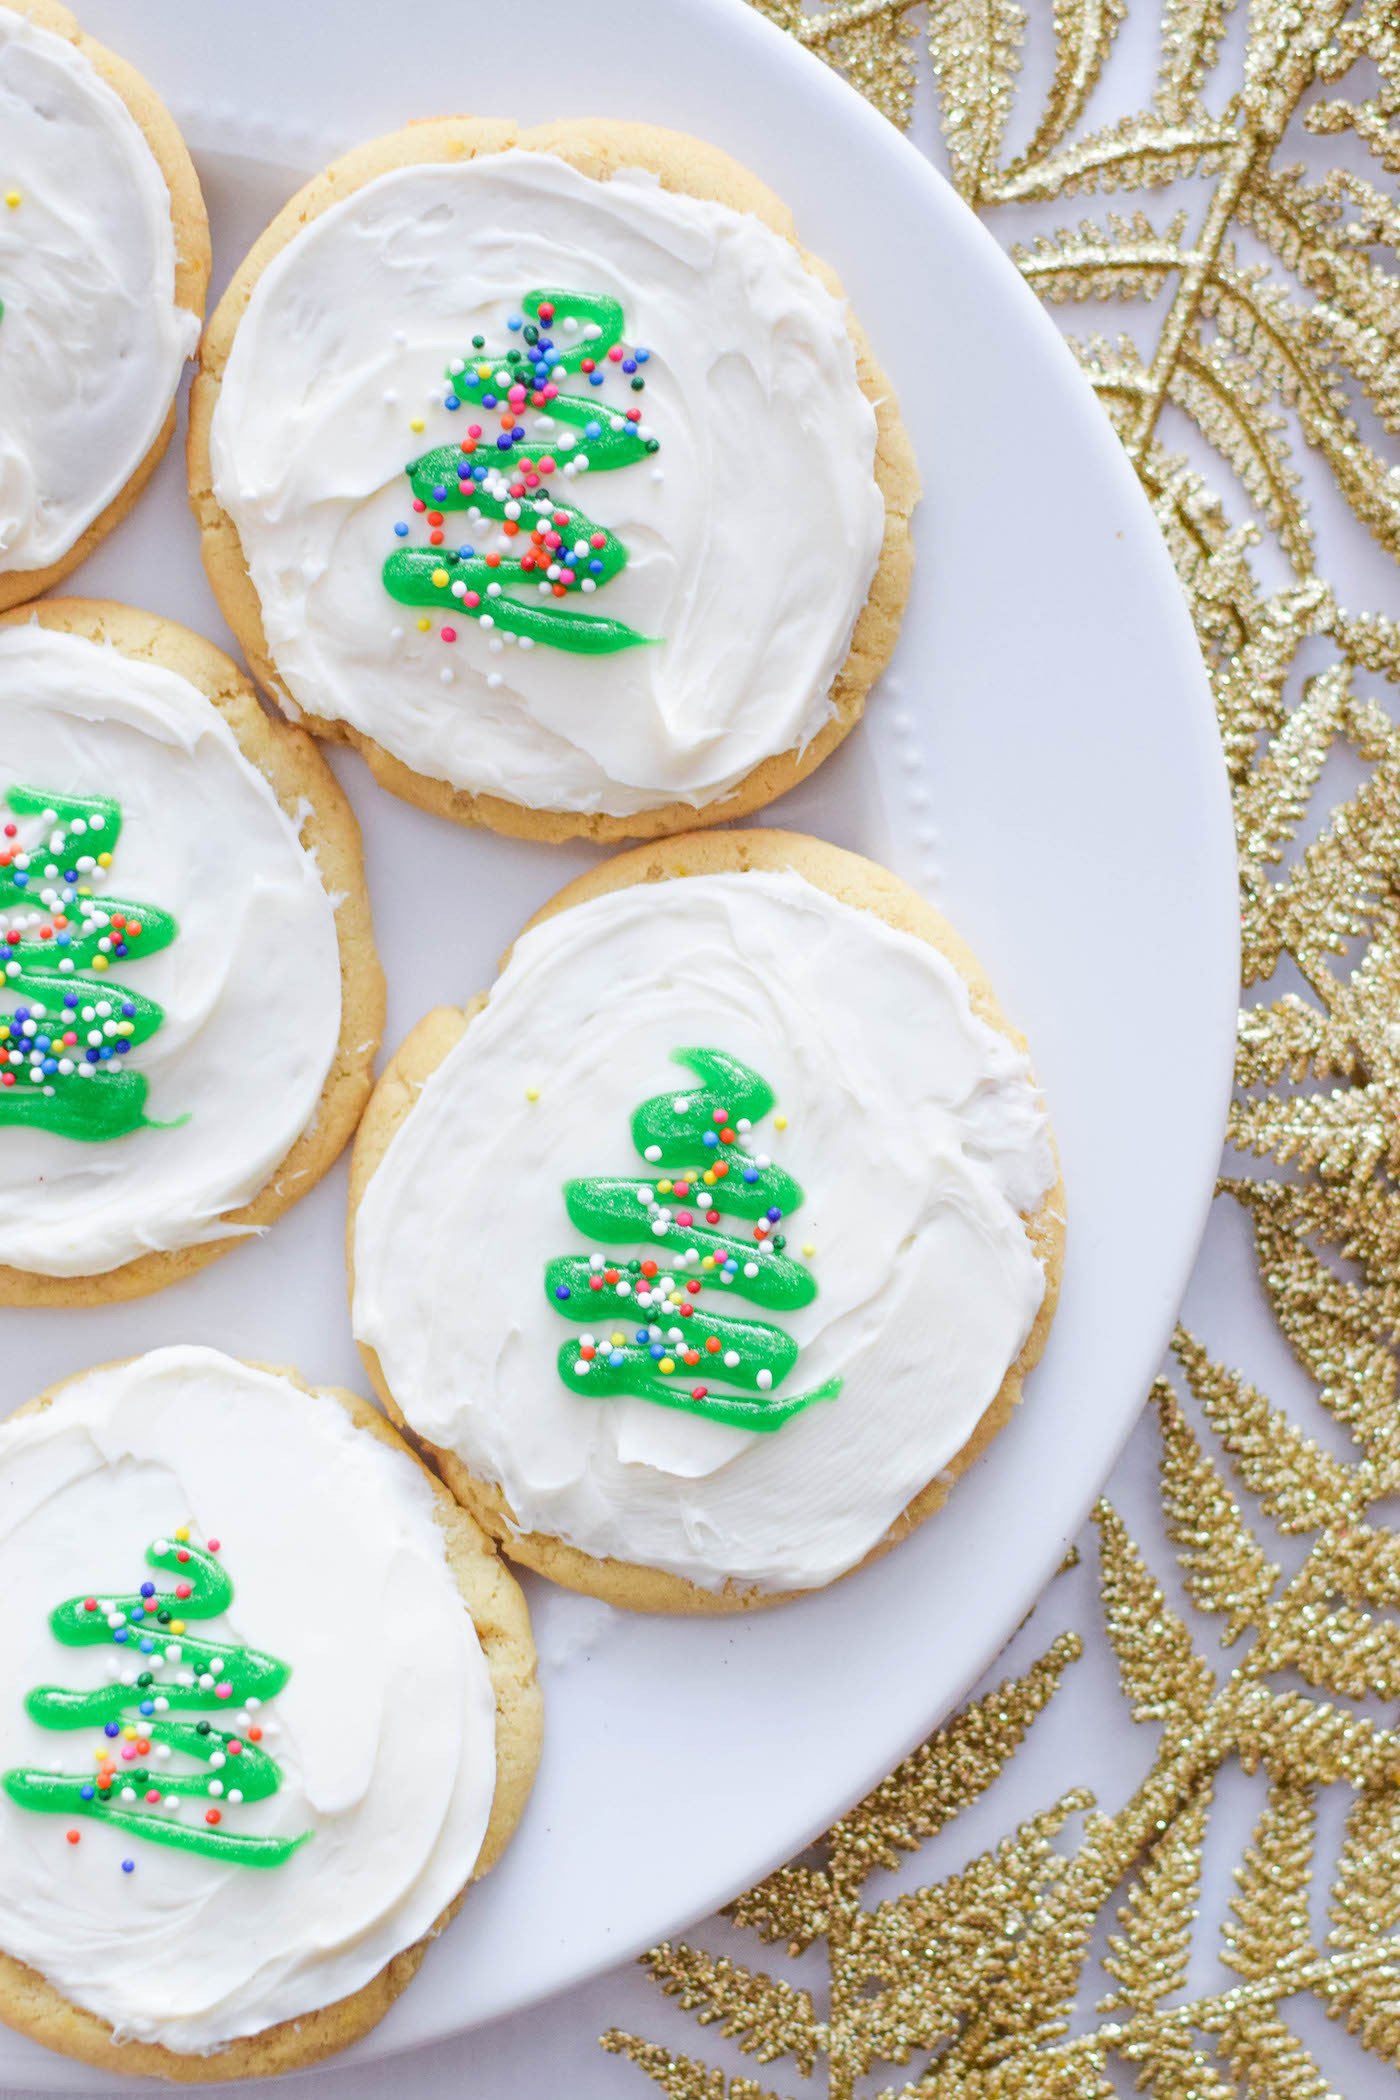 Old Fashioned Christmas Cookies Recipe  Old Fashioned Christmas Sugar Cookie Recipe